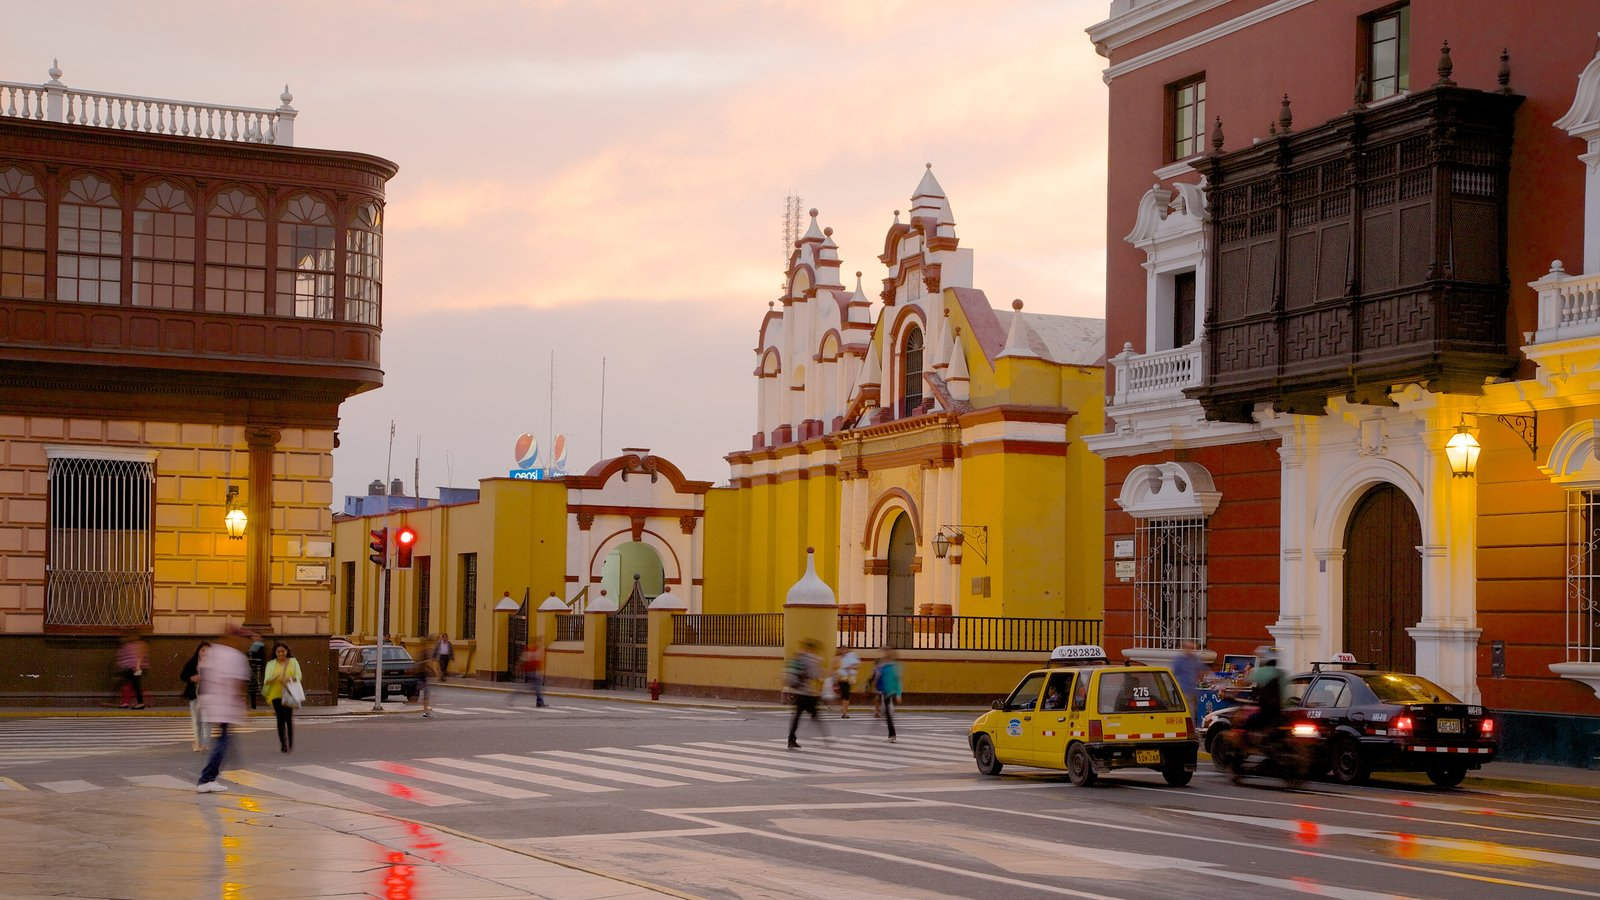 Trujillo Plaza de Armas featuring a sunset, a city and street scenes